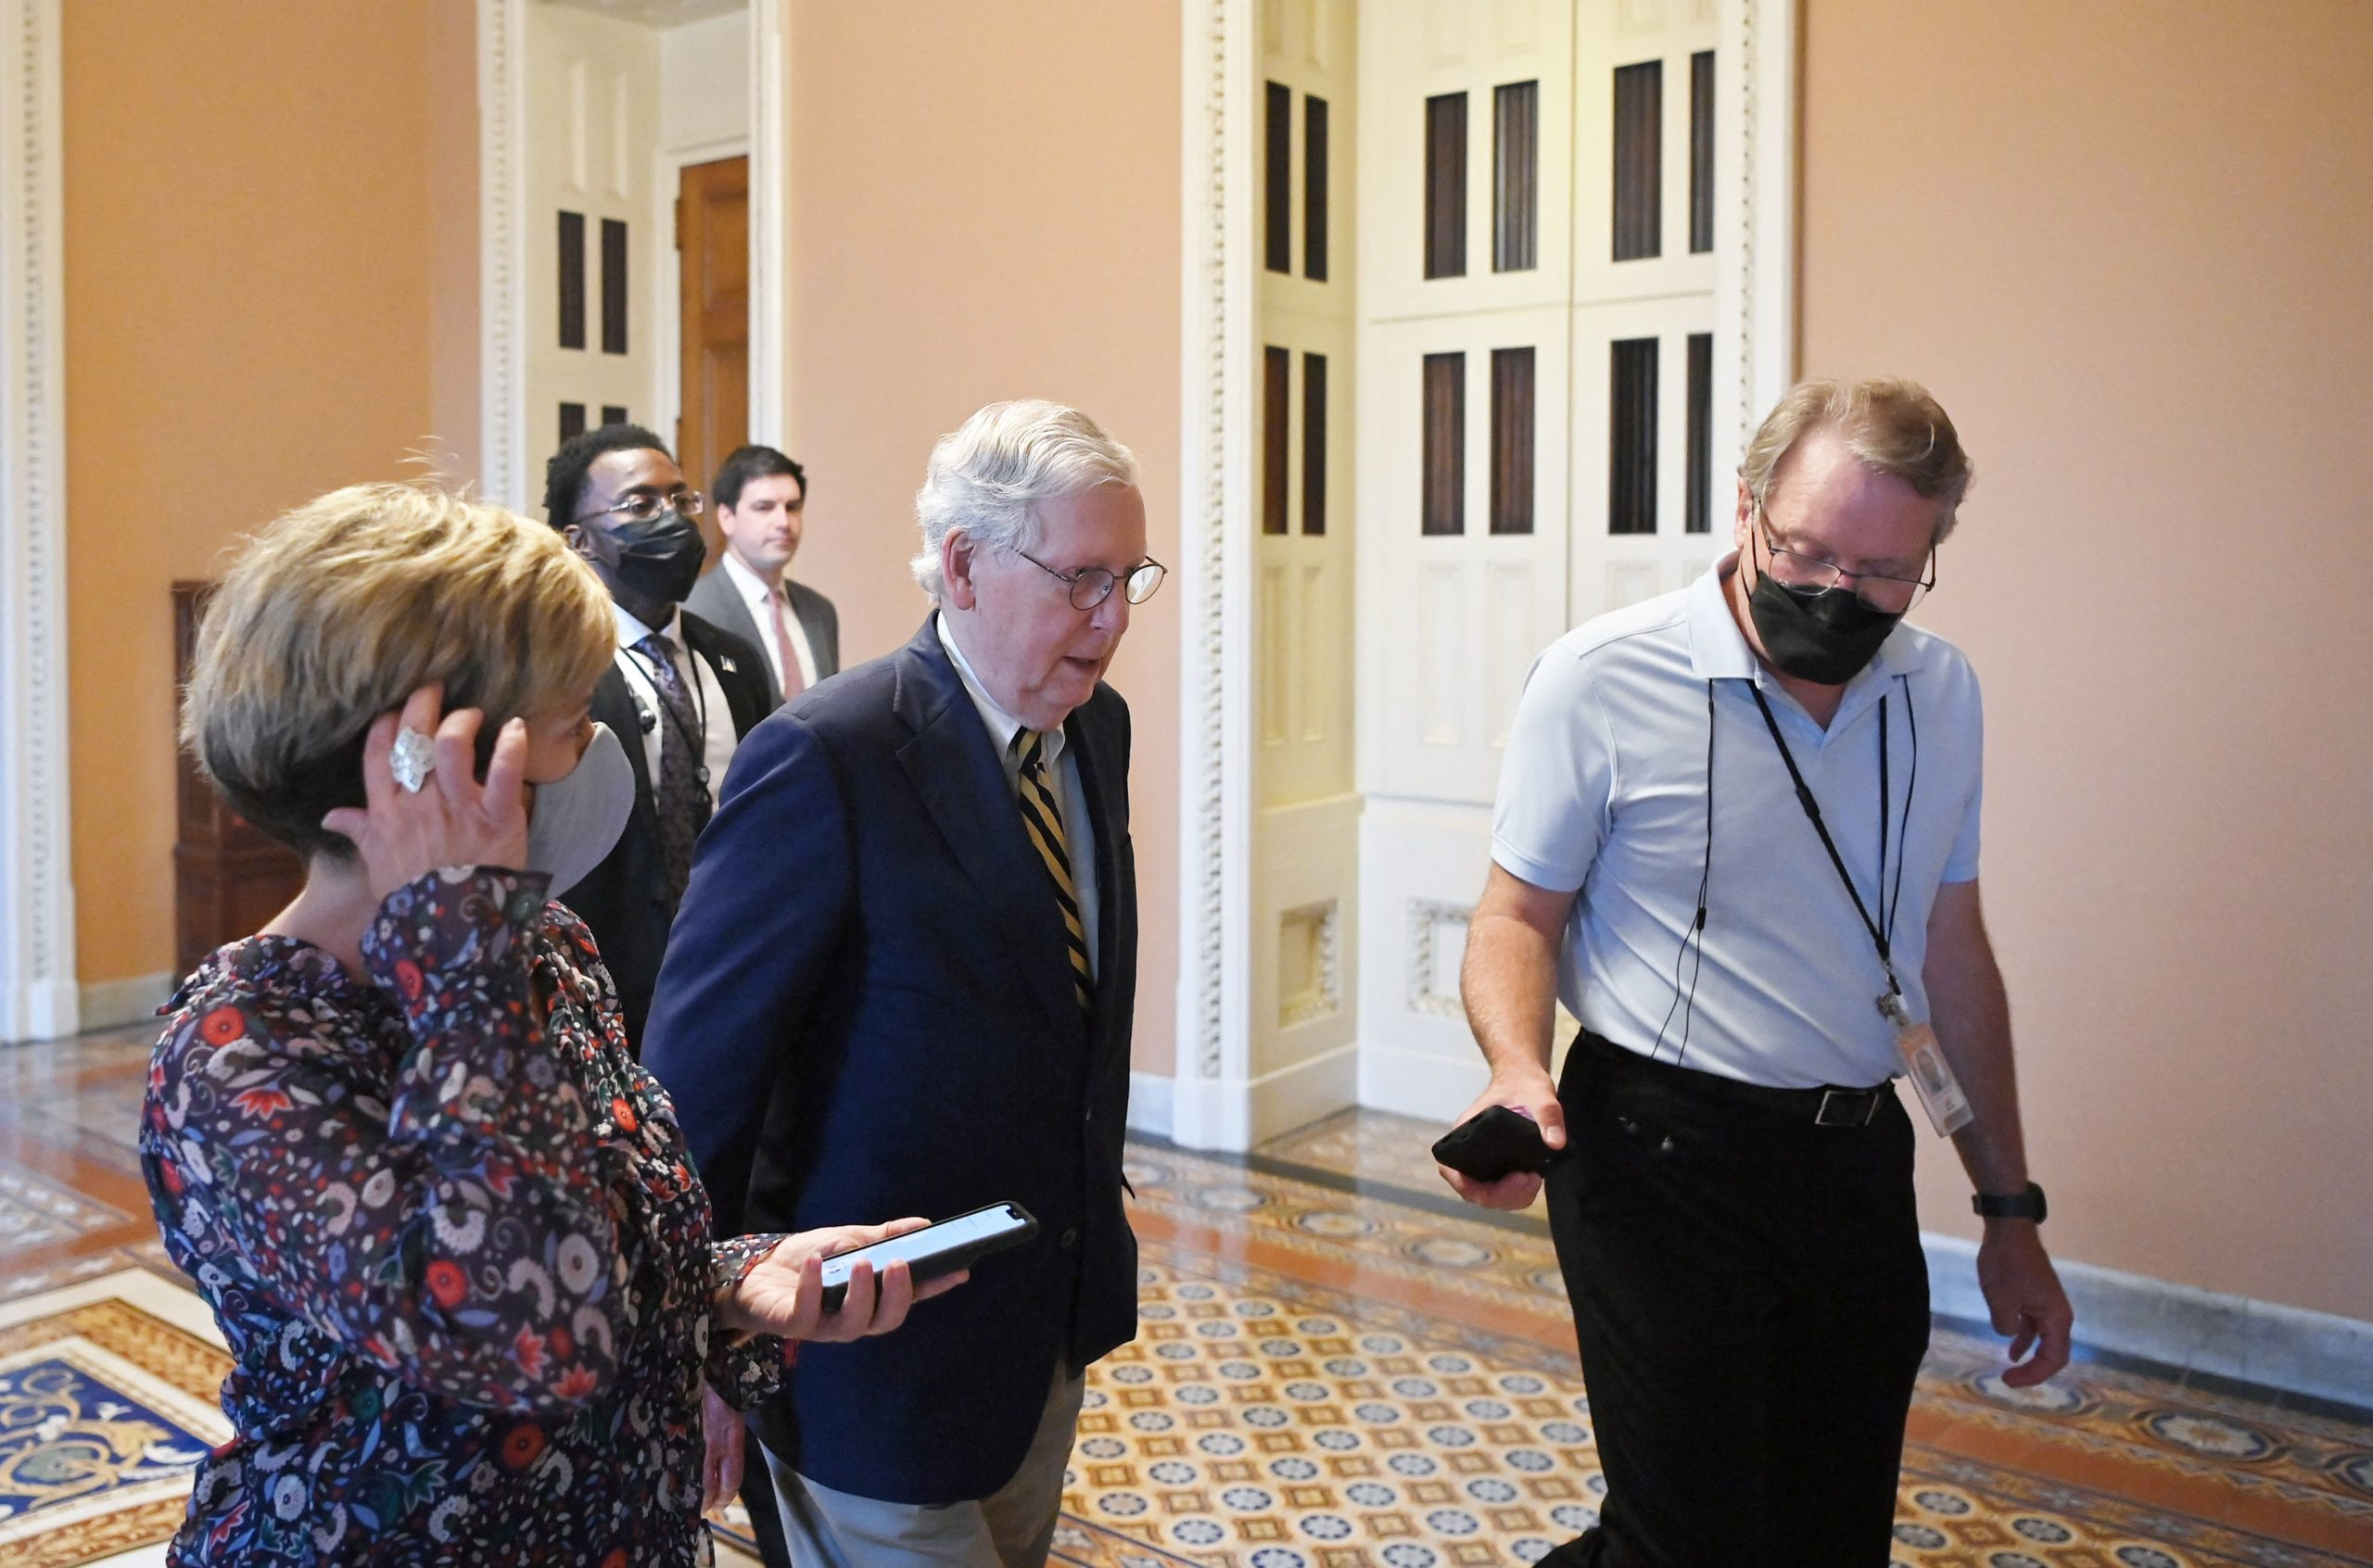 Senate Minority Leader Mitch McConnell arrives at the Capitol on Saturday. (Mandel Ngan/AFP via Getty Images)